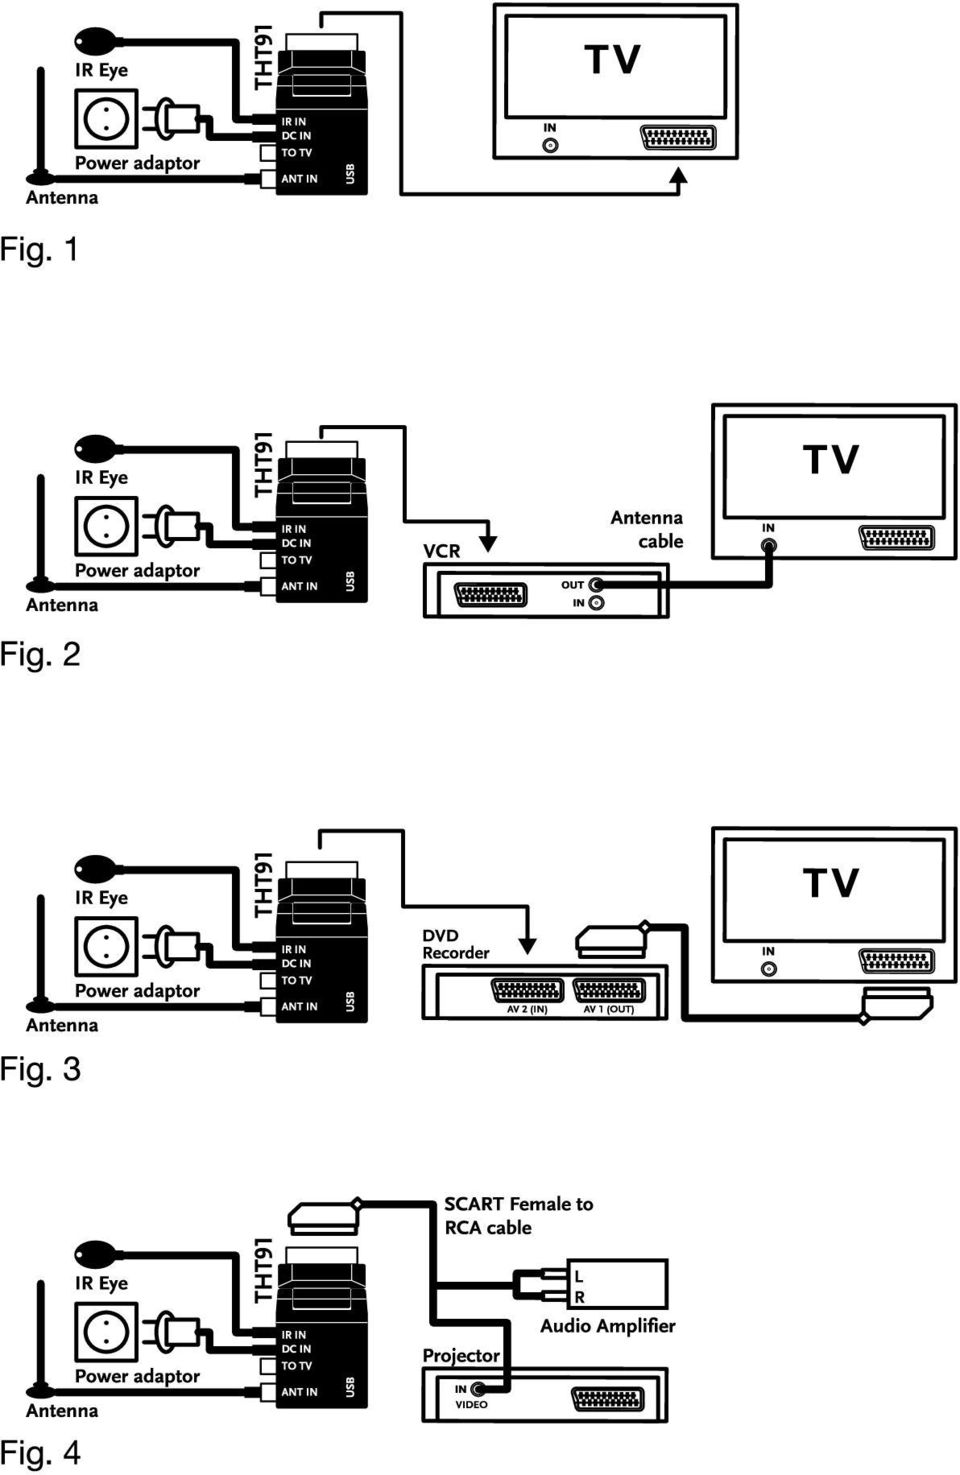 THT91 Digital Terrestrial Receiver. User manual